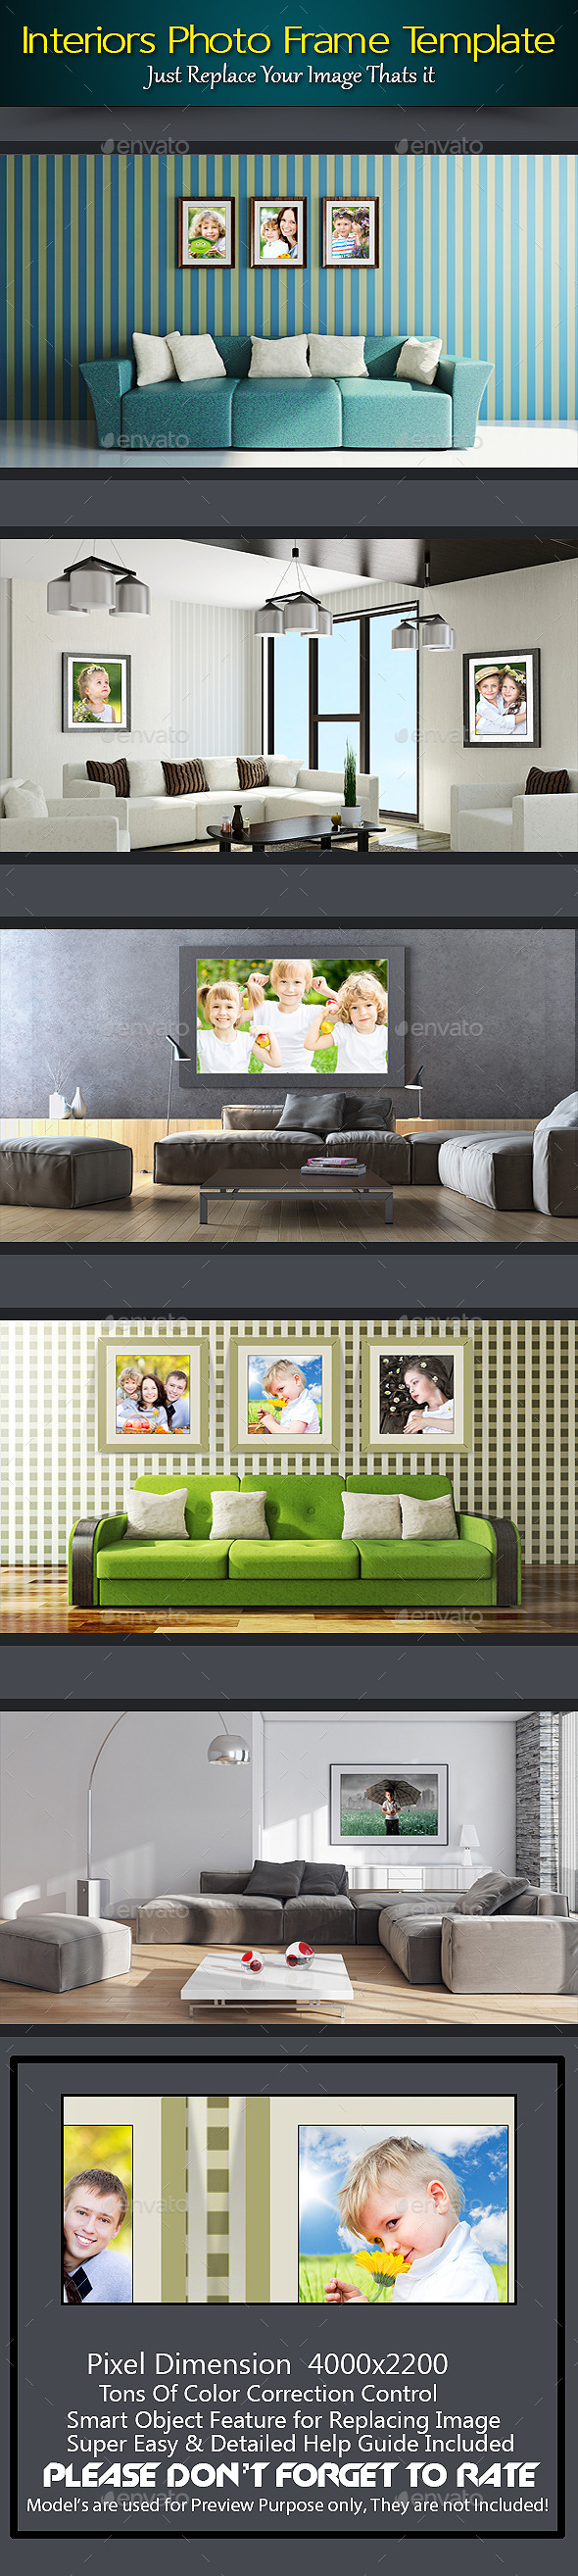 Interiors Photo Frame Template - Photo Templates Graphics